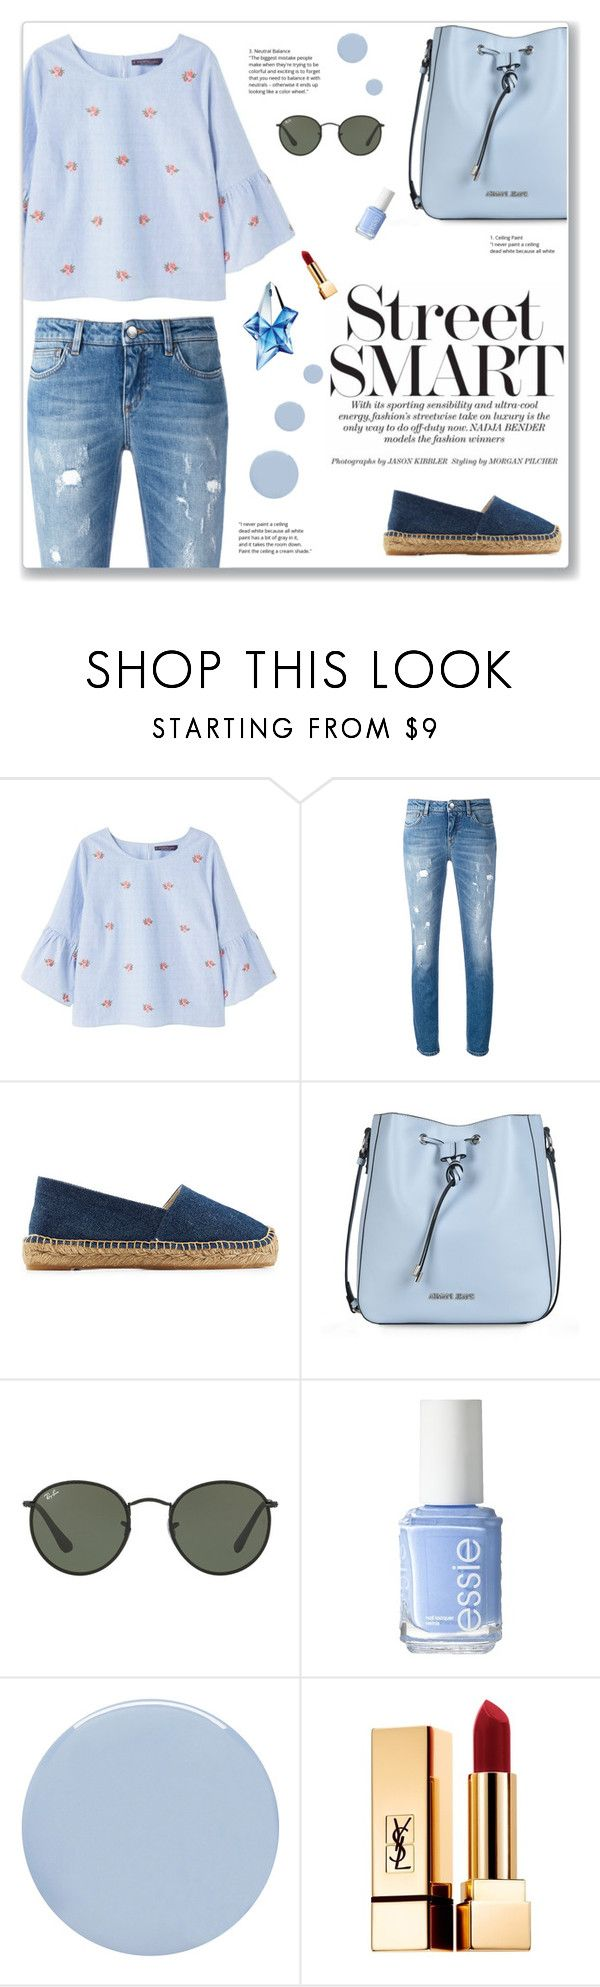 """""""."""" by here-comes-caroline ❤ liked on Polyvore featuring Violeta by Mango, Dolce&Gabbana, Castañer, Armani Jeans, Ray-Ban, Essie, Deborah Lippmann, Yves Saint Laurent and Thierry Mugler"""